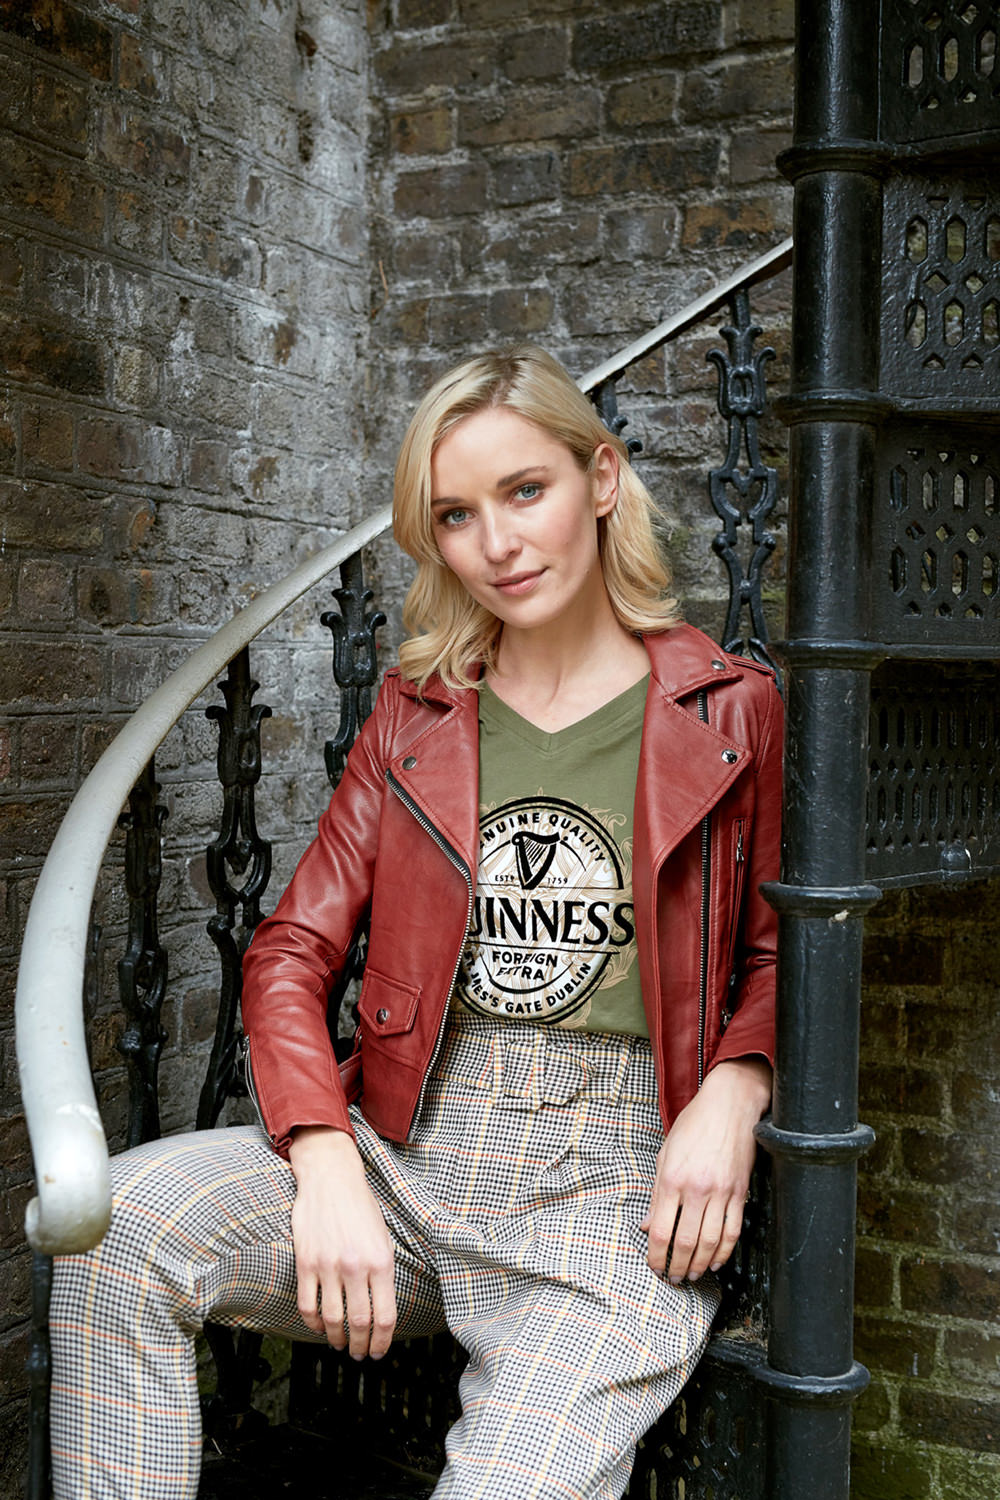 Guinness Dublin merchandise shot by Johnny McMillan 1.jpg